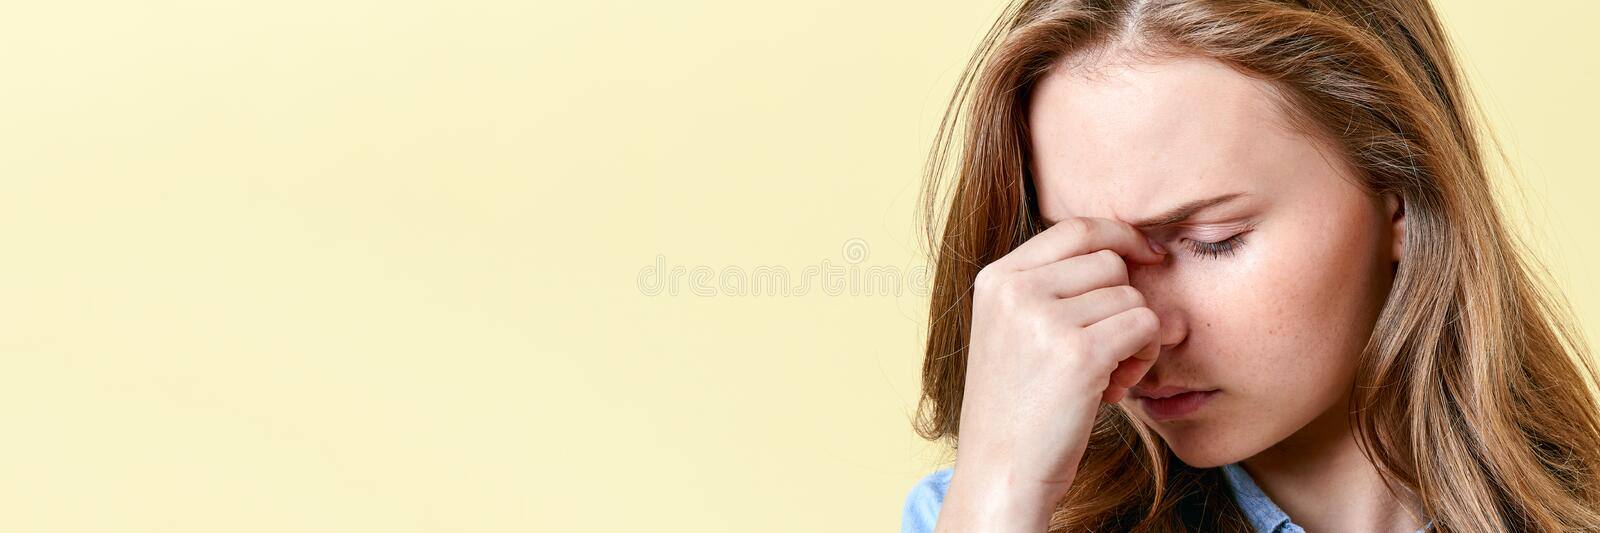 Beautiful teenager girl with ginger hair and freckles having headache and sore eyes. Tired student. stock image